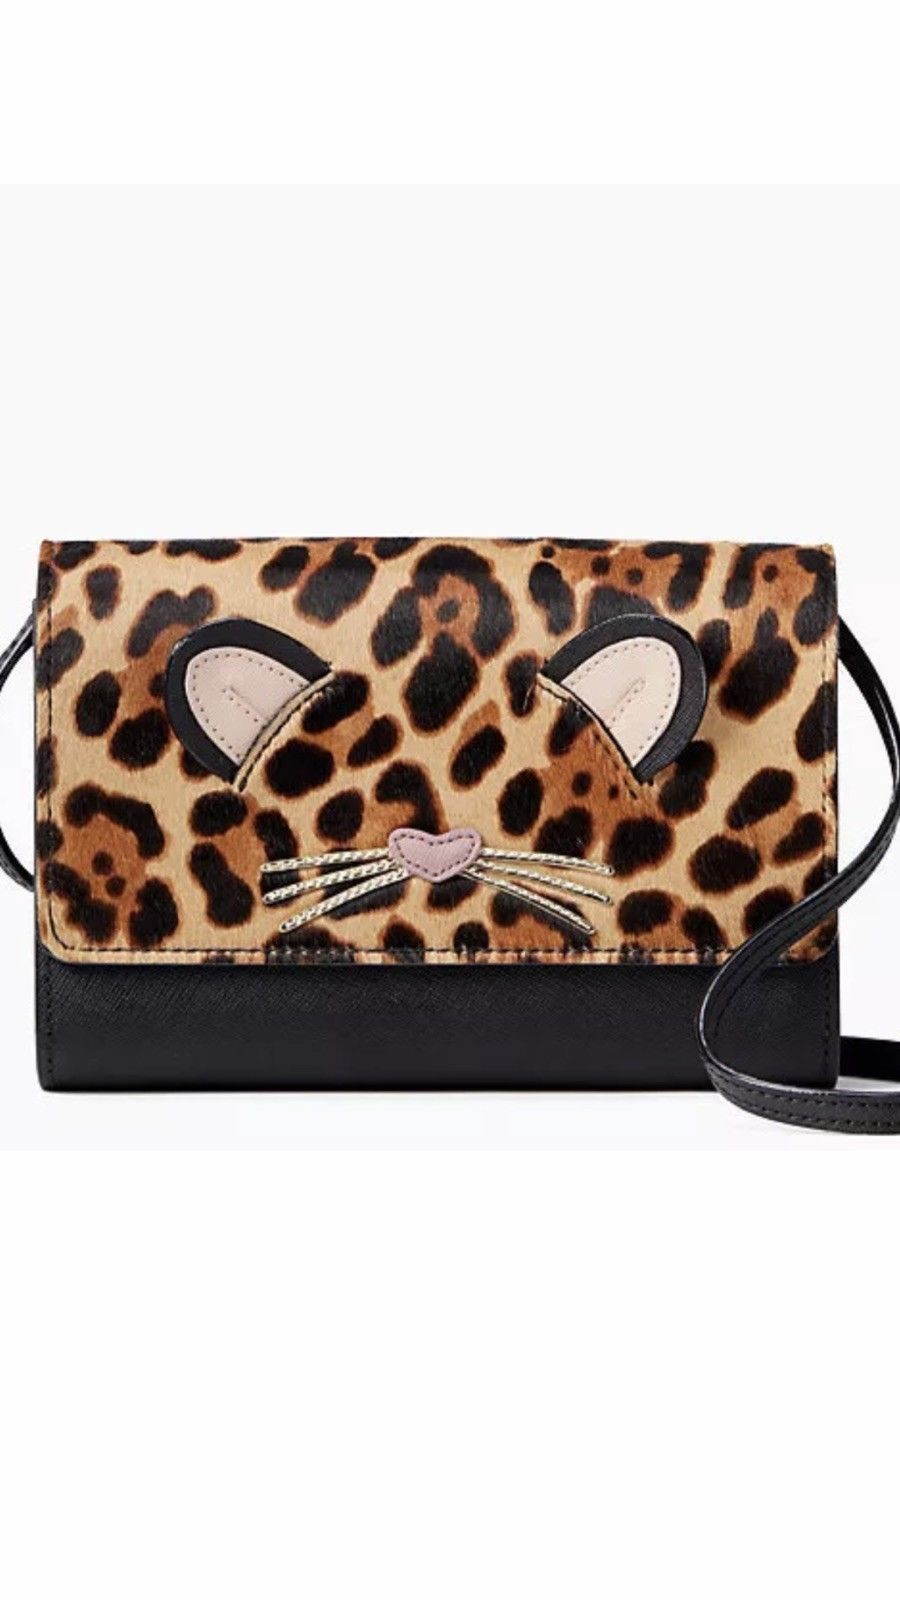 Primary image for KATE SPADE NWT LEOPARD SUMMER RUN WILD CROSSBODY CLUTCH WALLET BAG LEATHER